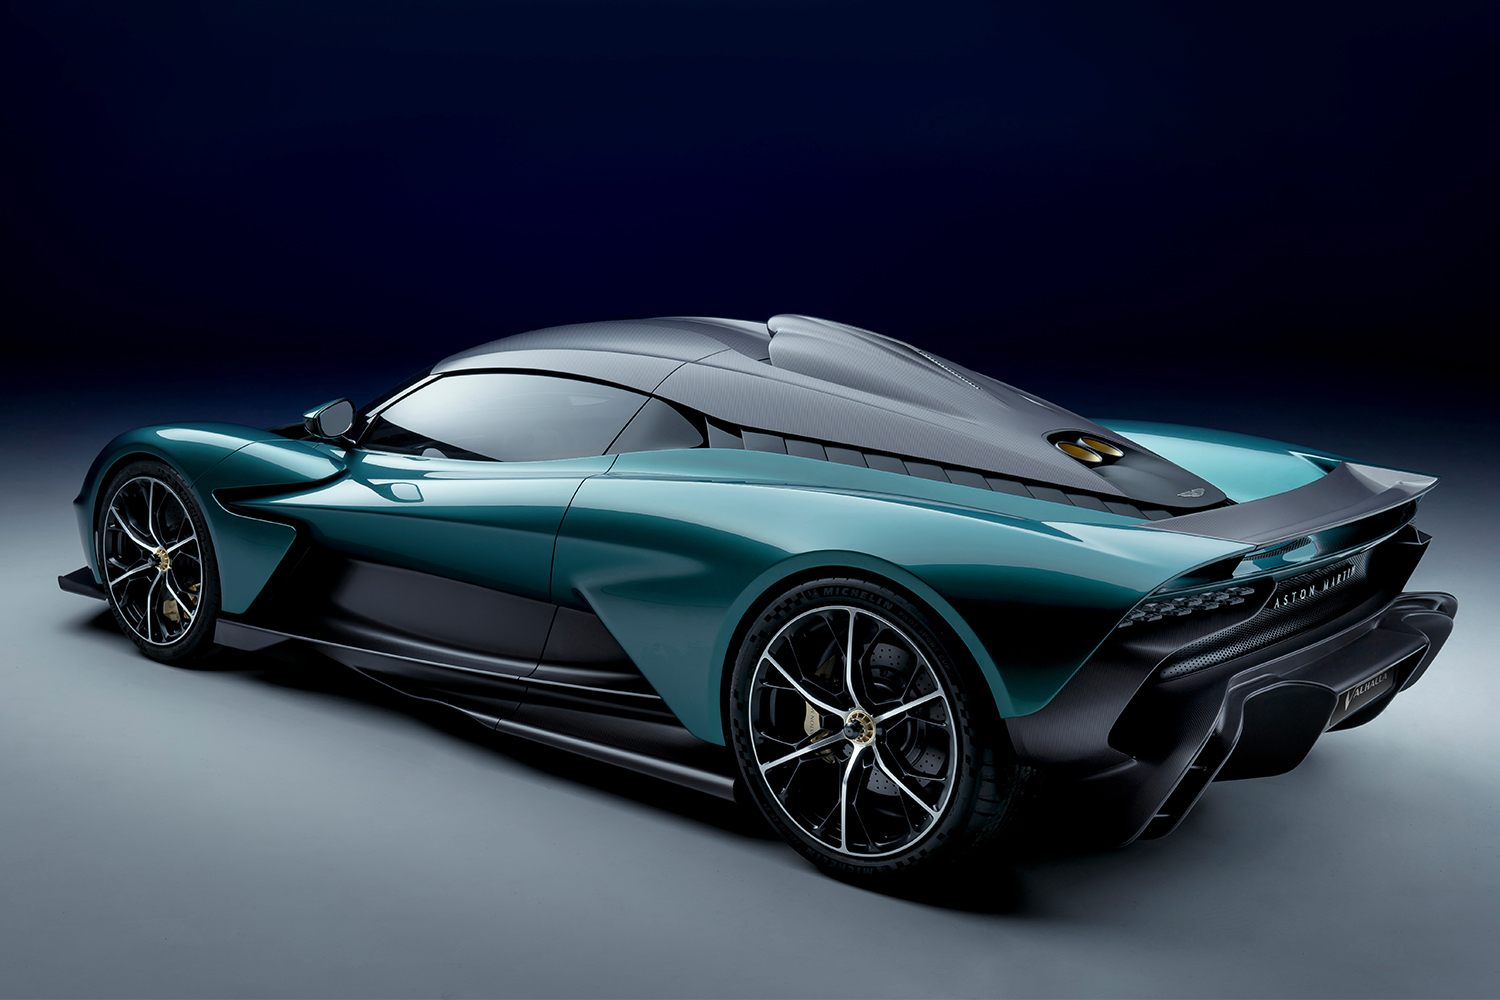 """The new Aston Martin Valhalla supercar shot in a studio. The concept version will star alongside James Bond in """"No Time to Die."""""""